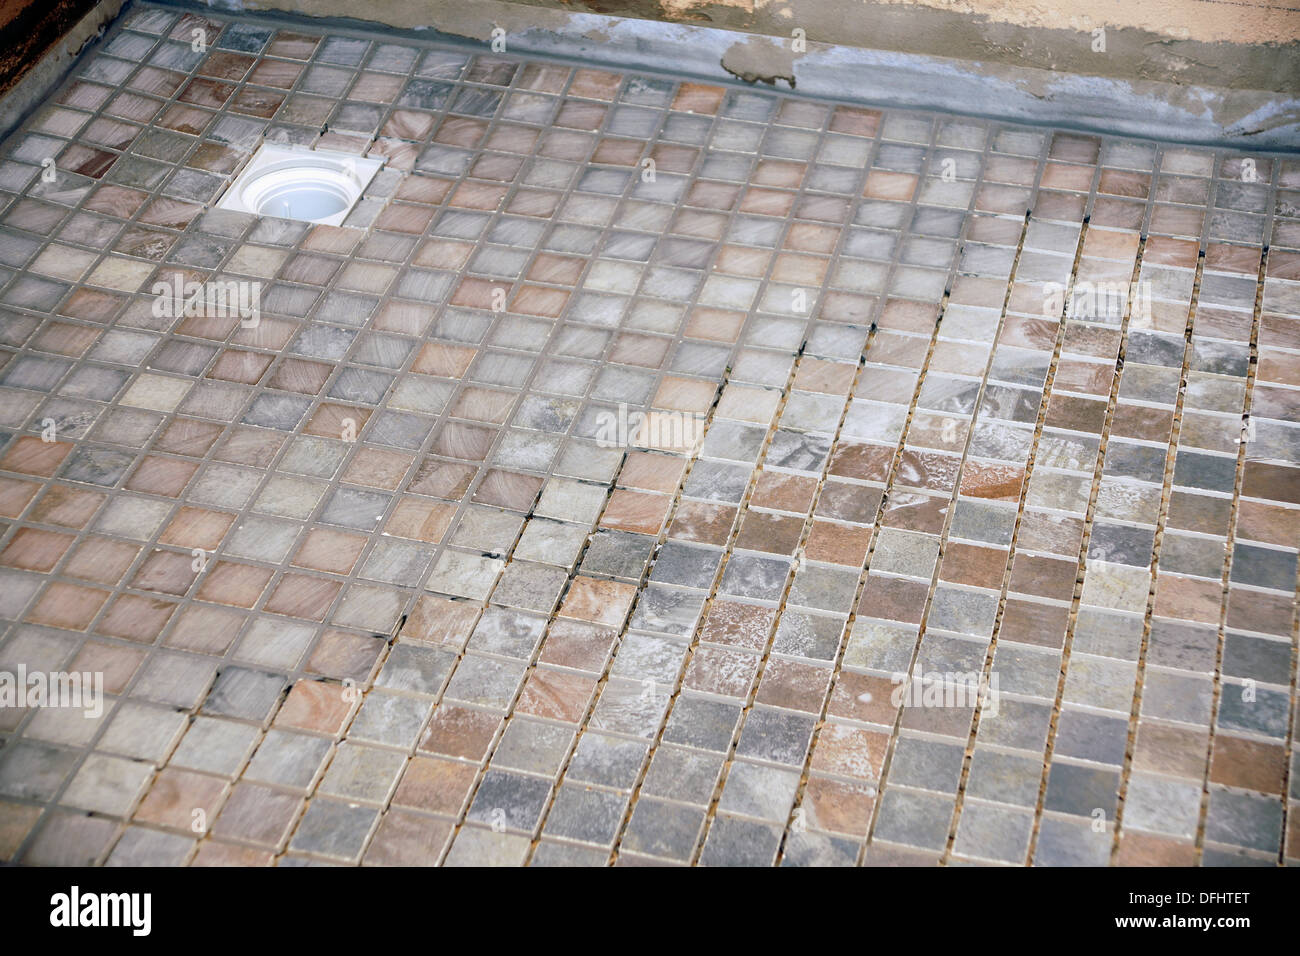 Non Slip Tiles Used For The Flooring In A Wet Room Shower Bathroom Stock Photo Royalty Free